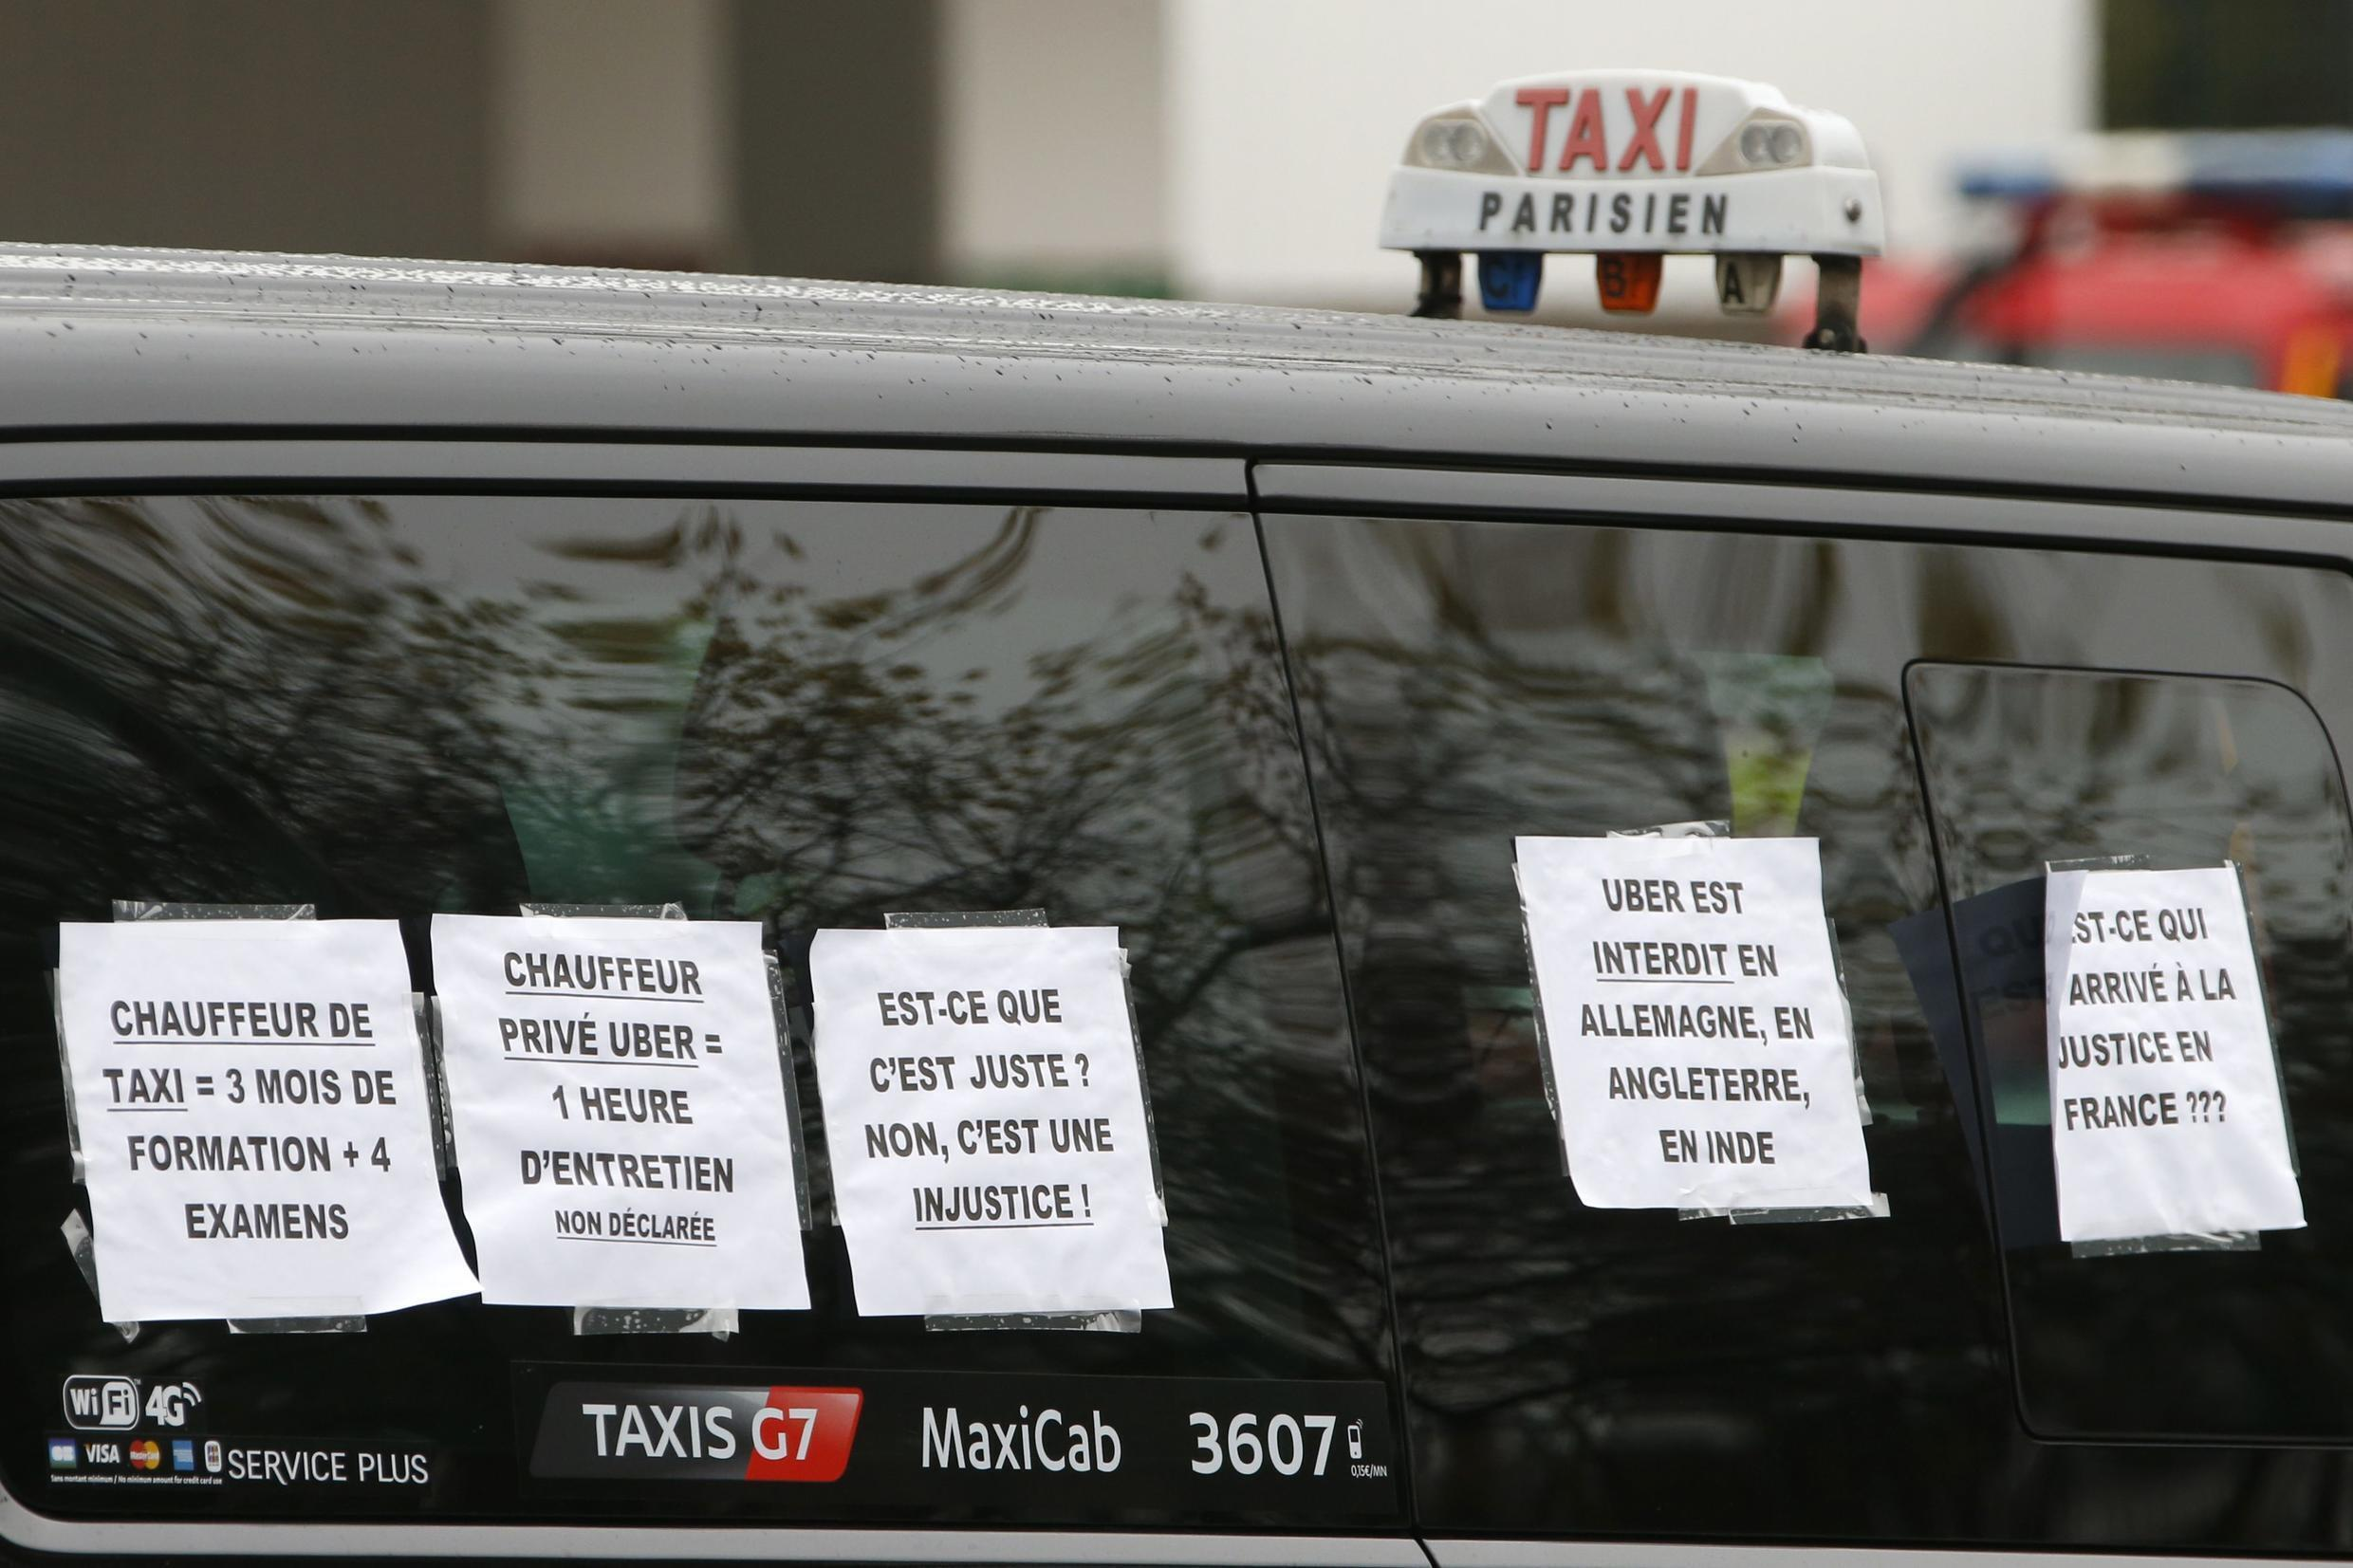 A striking Paris taxi takes part in a demonstration over the Paris ring road December 15, 2014. The UberPop transport service will be forbidden in France beginning January 1, 2015, the French interior ministry said on Monday